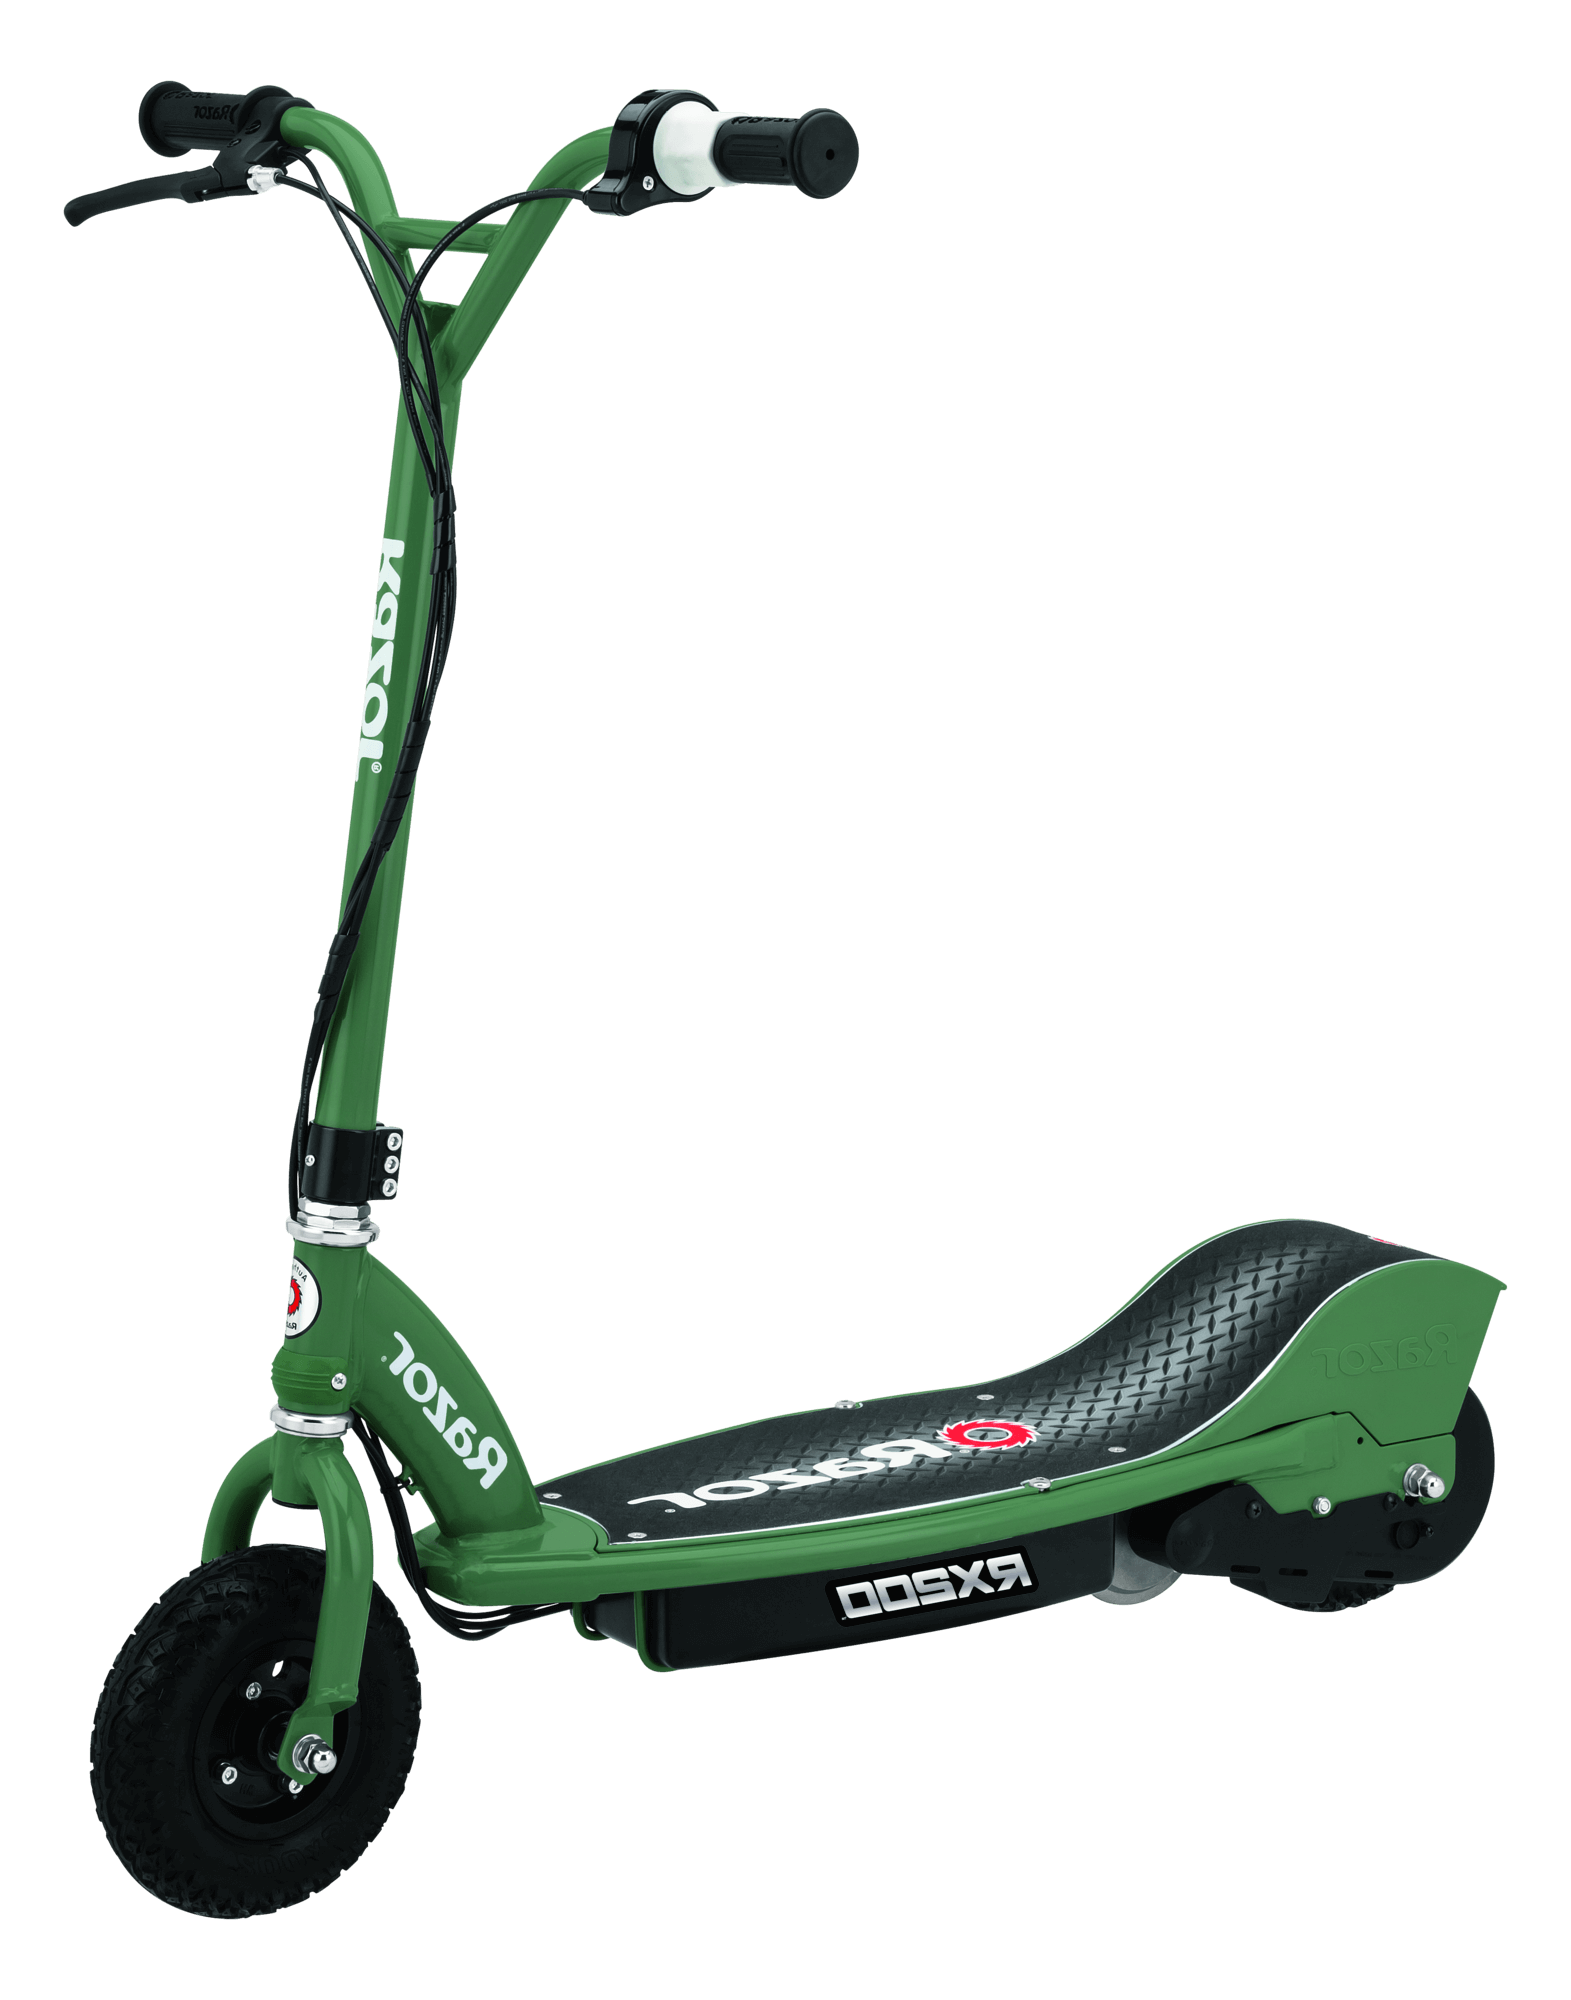 Razor Rx200 best electric scooter for teenagers